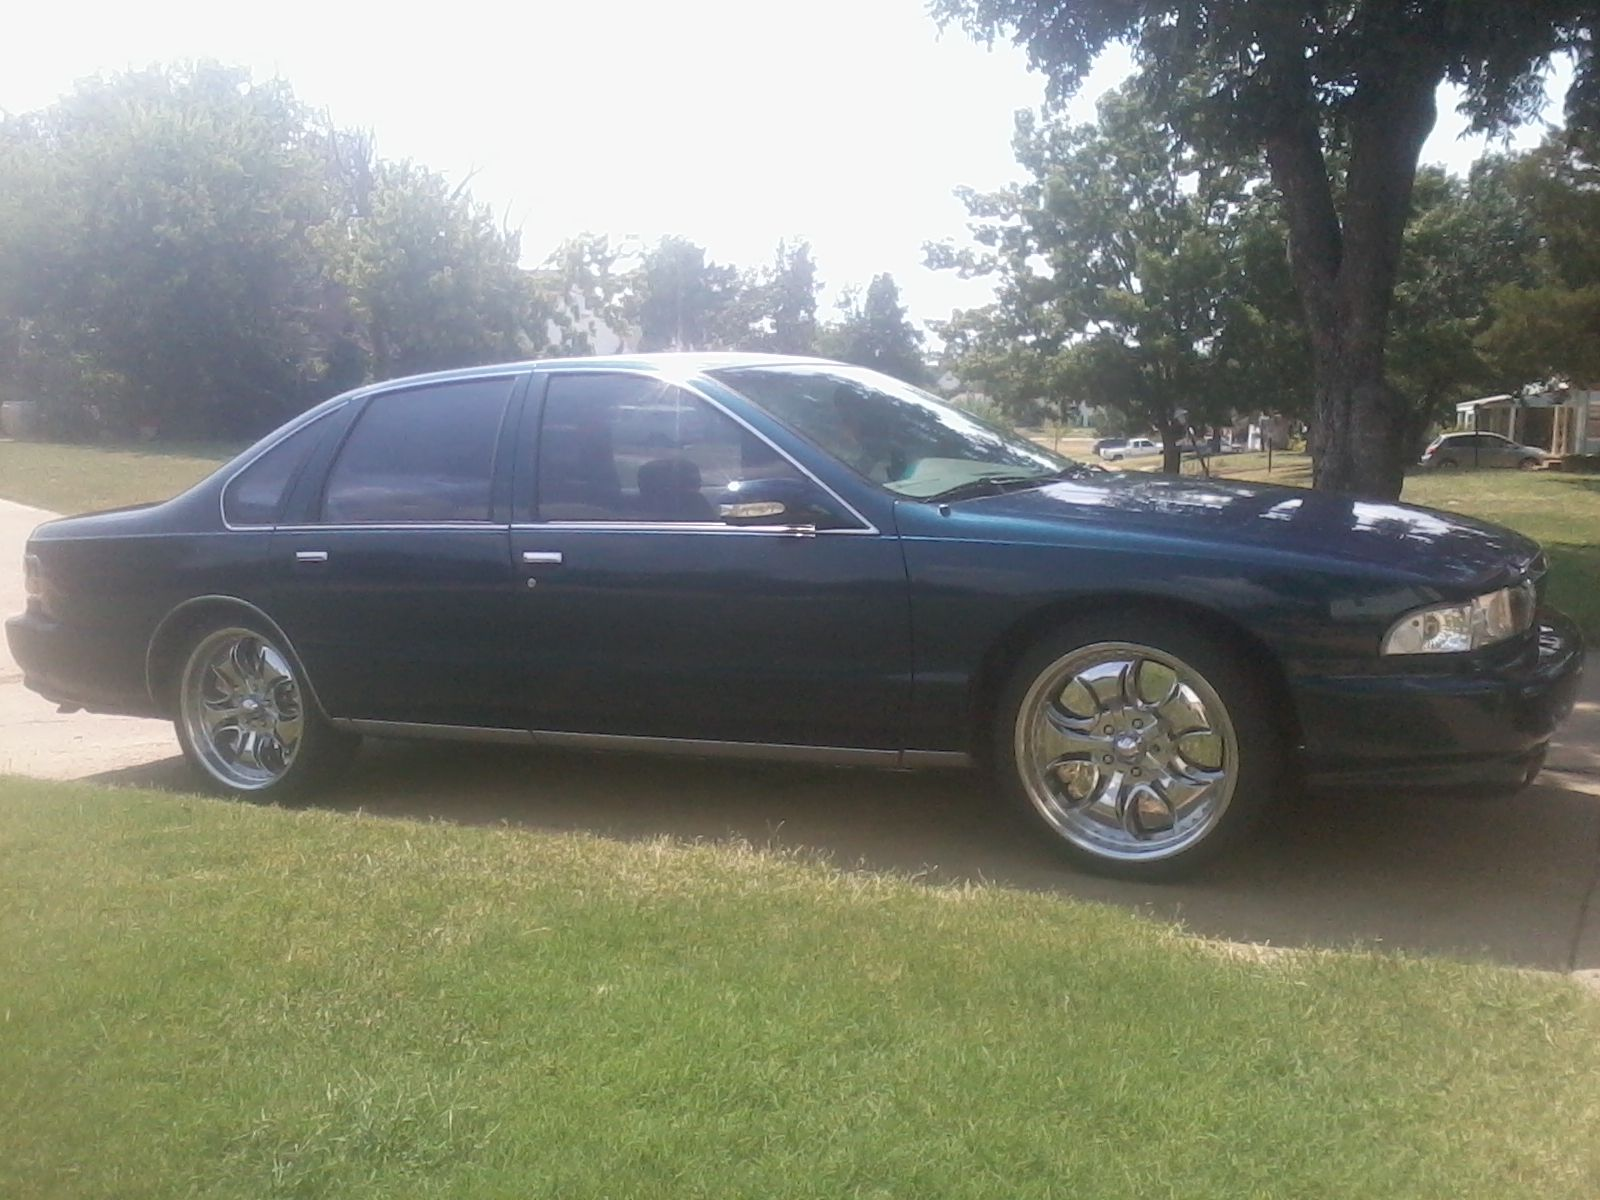 1996 chevrolet caprice classic for sale lawton oklahoma. Black Bedroom Furniture Sets. Home Design Ideas